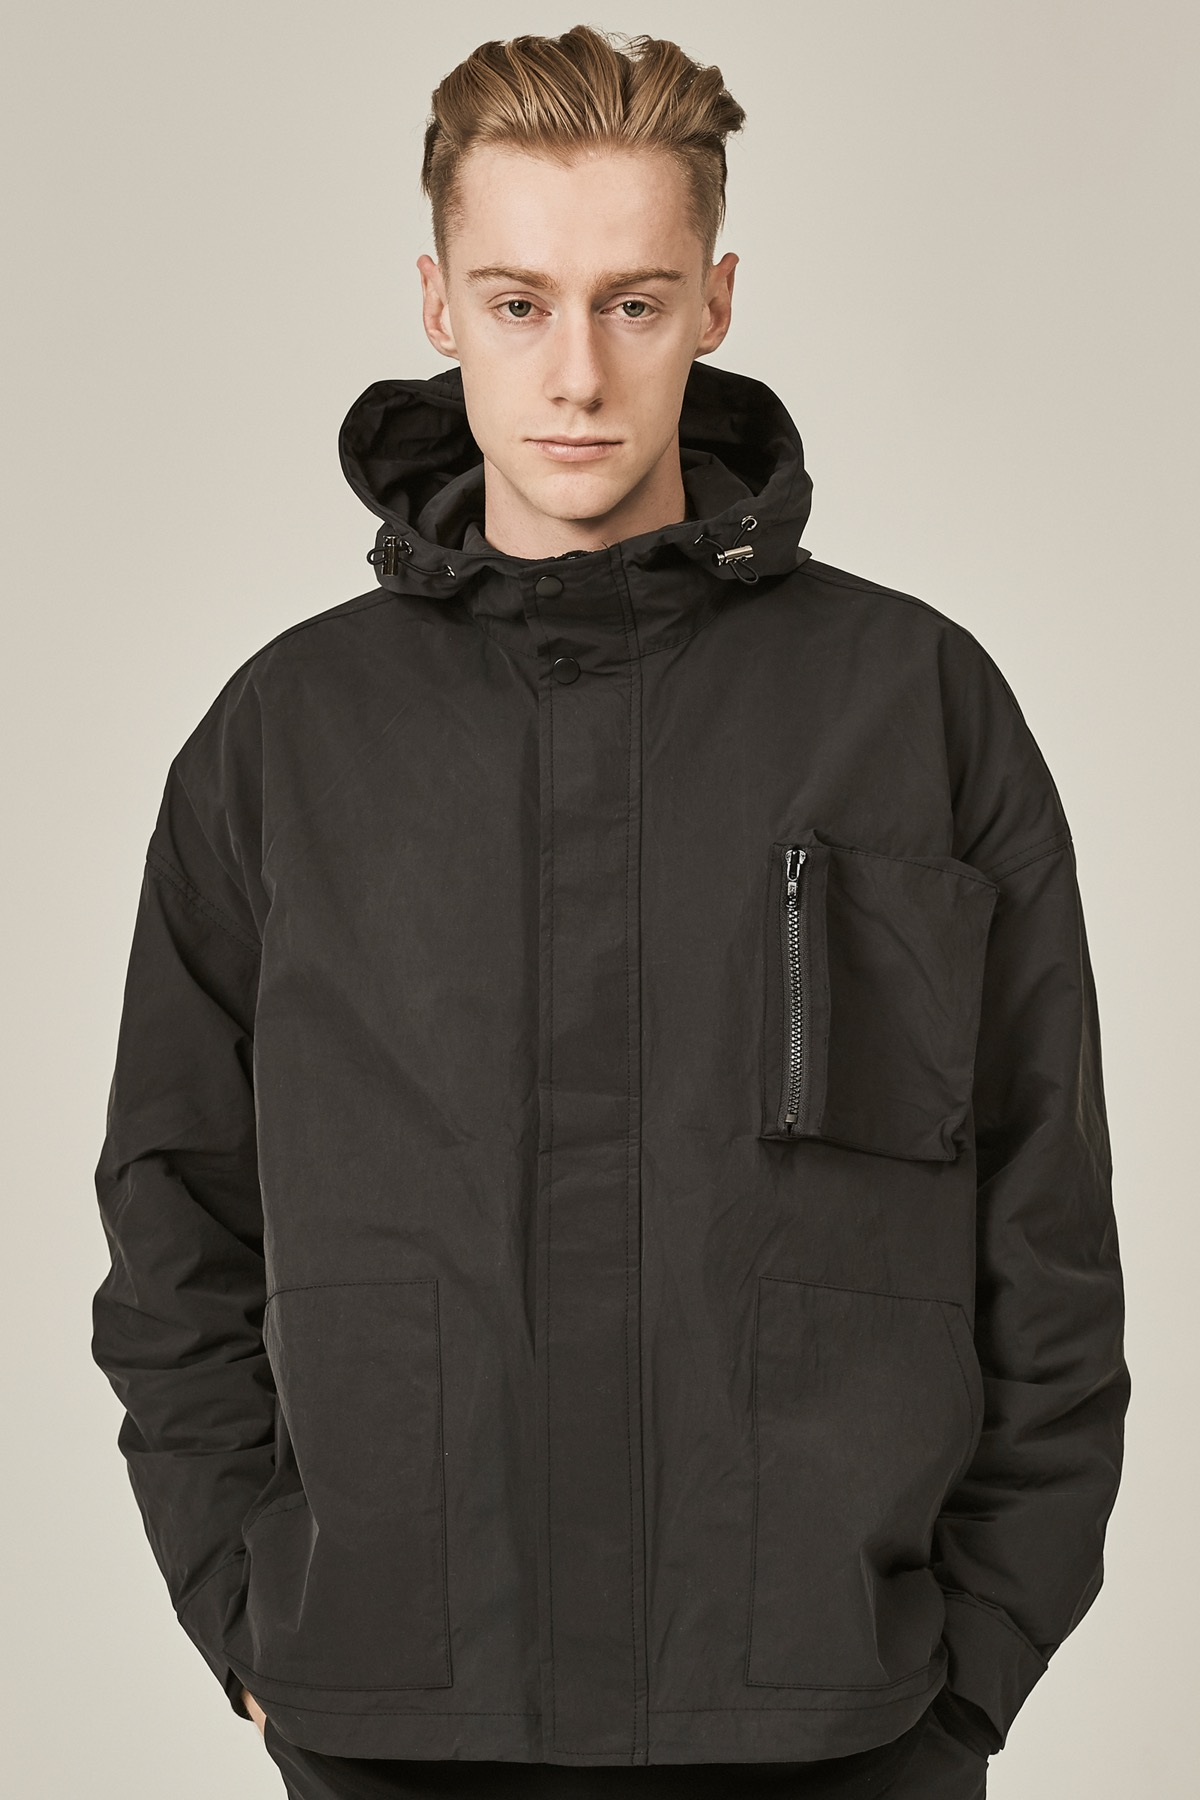 BLACK POCKET DOCKING HOODIE JACKET